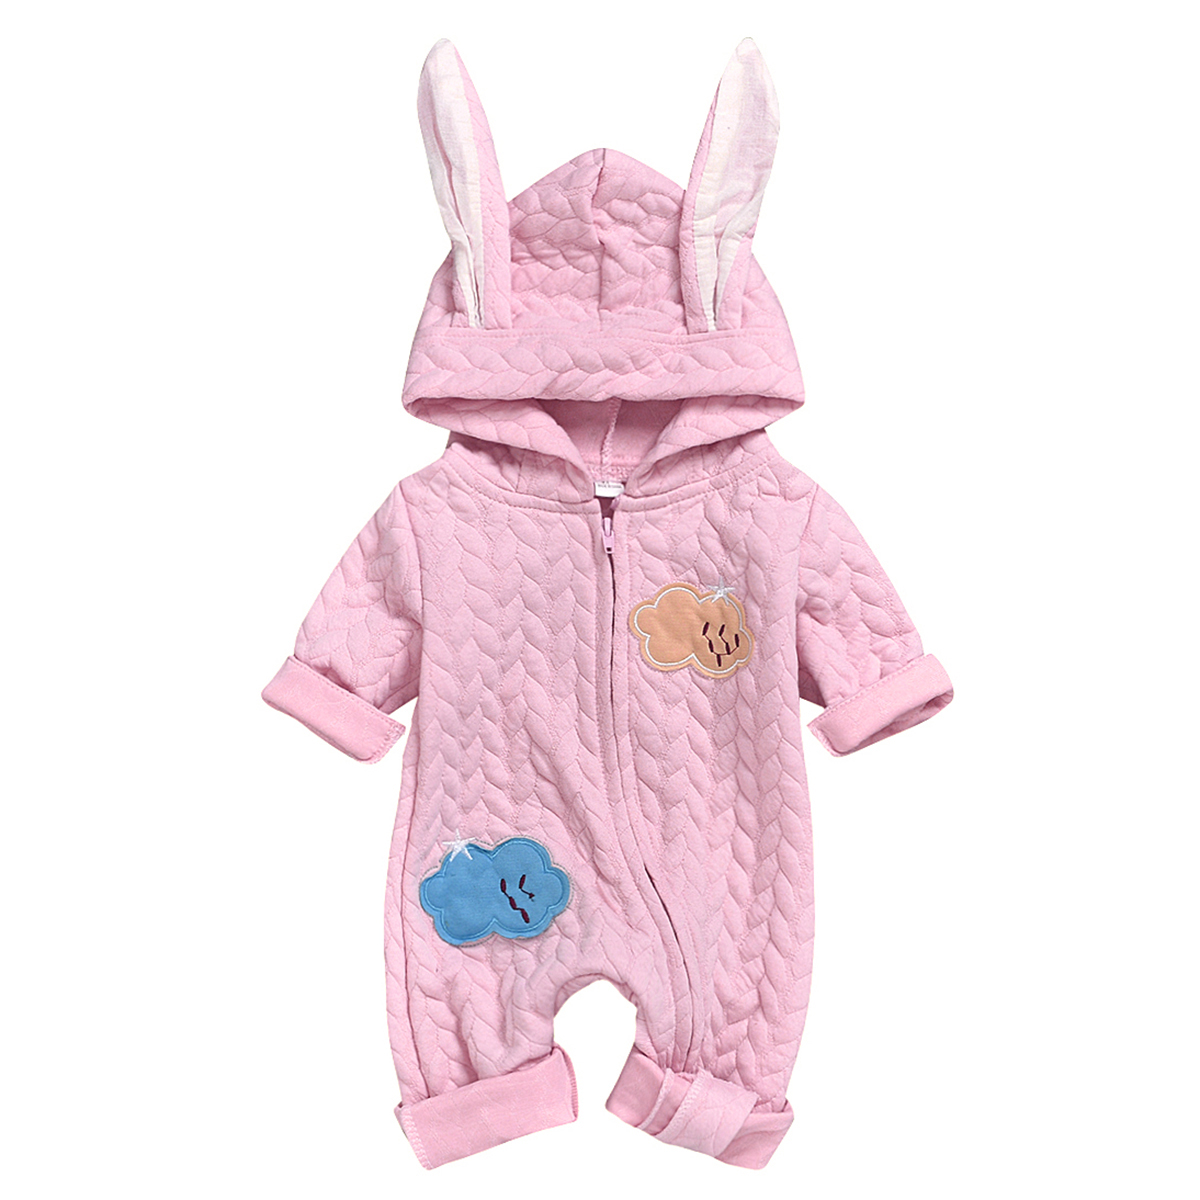 2019-new-russia-baby-costume-rompers-clothes-cold-winter-boy-girl-garment-cartoon-rabbit-warm-comfortable-pure-cotton-coat-kids